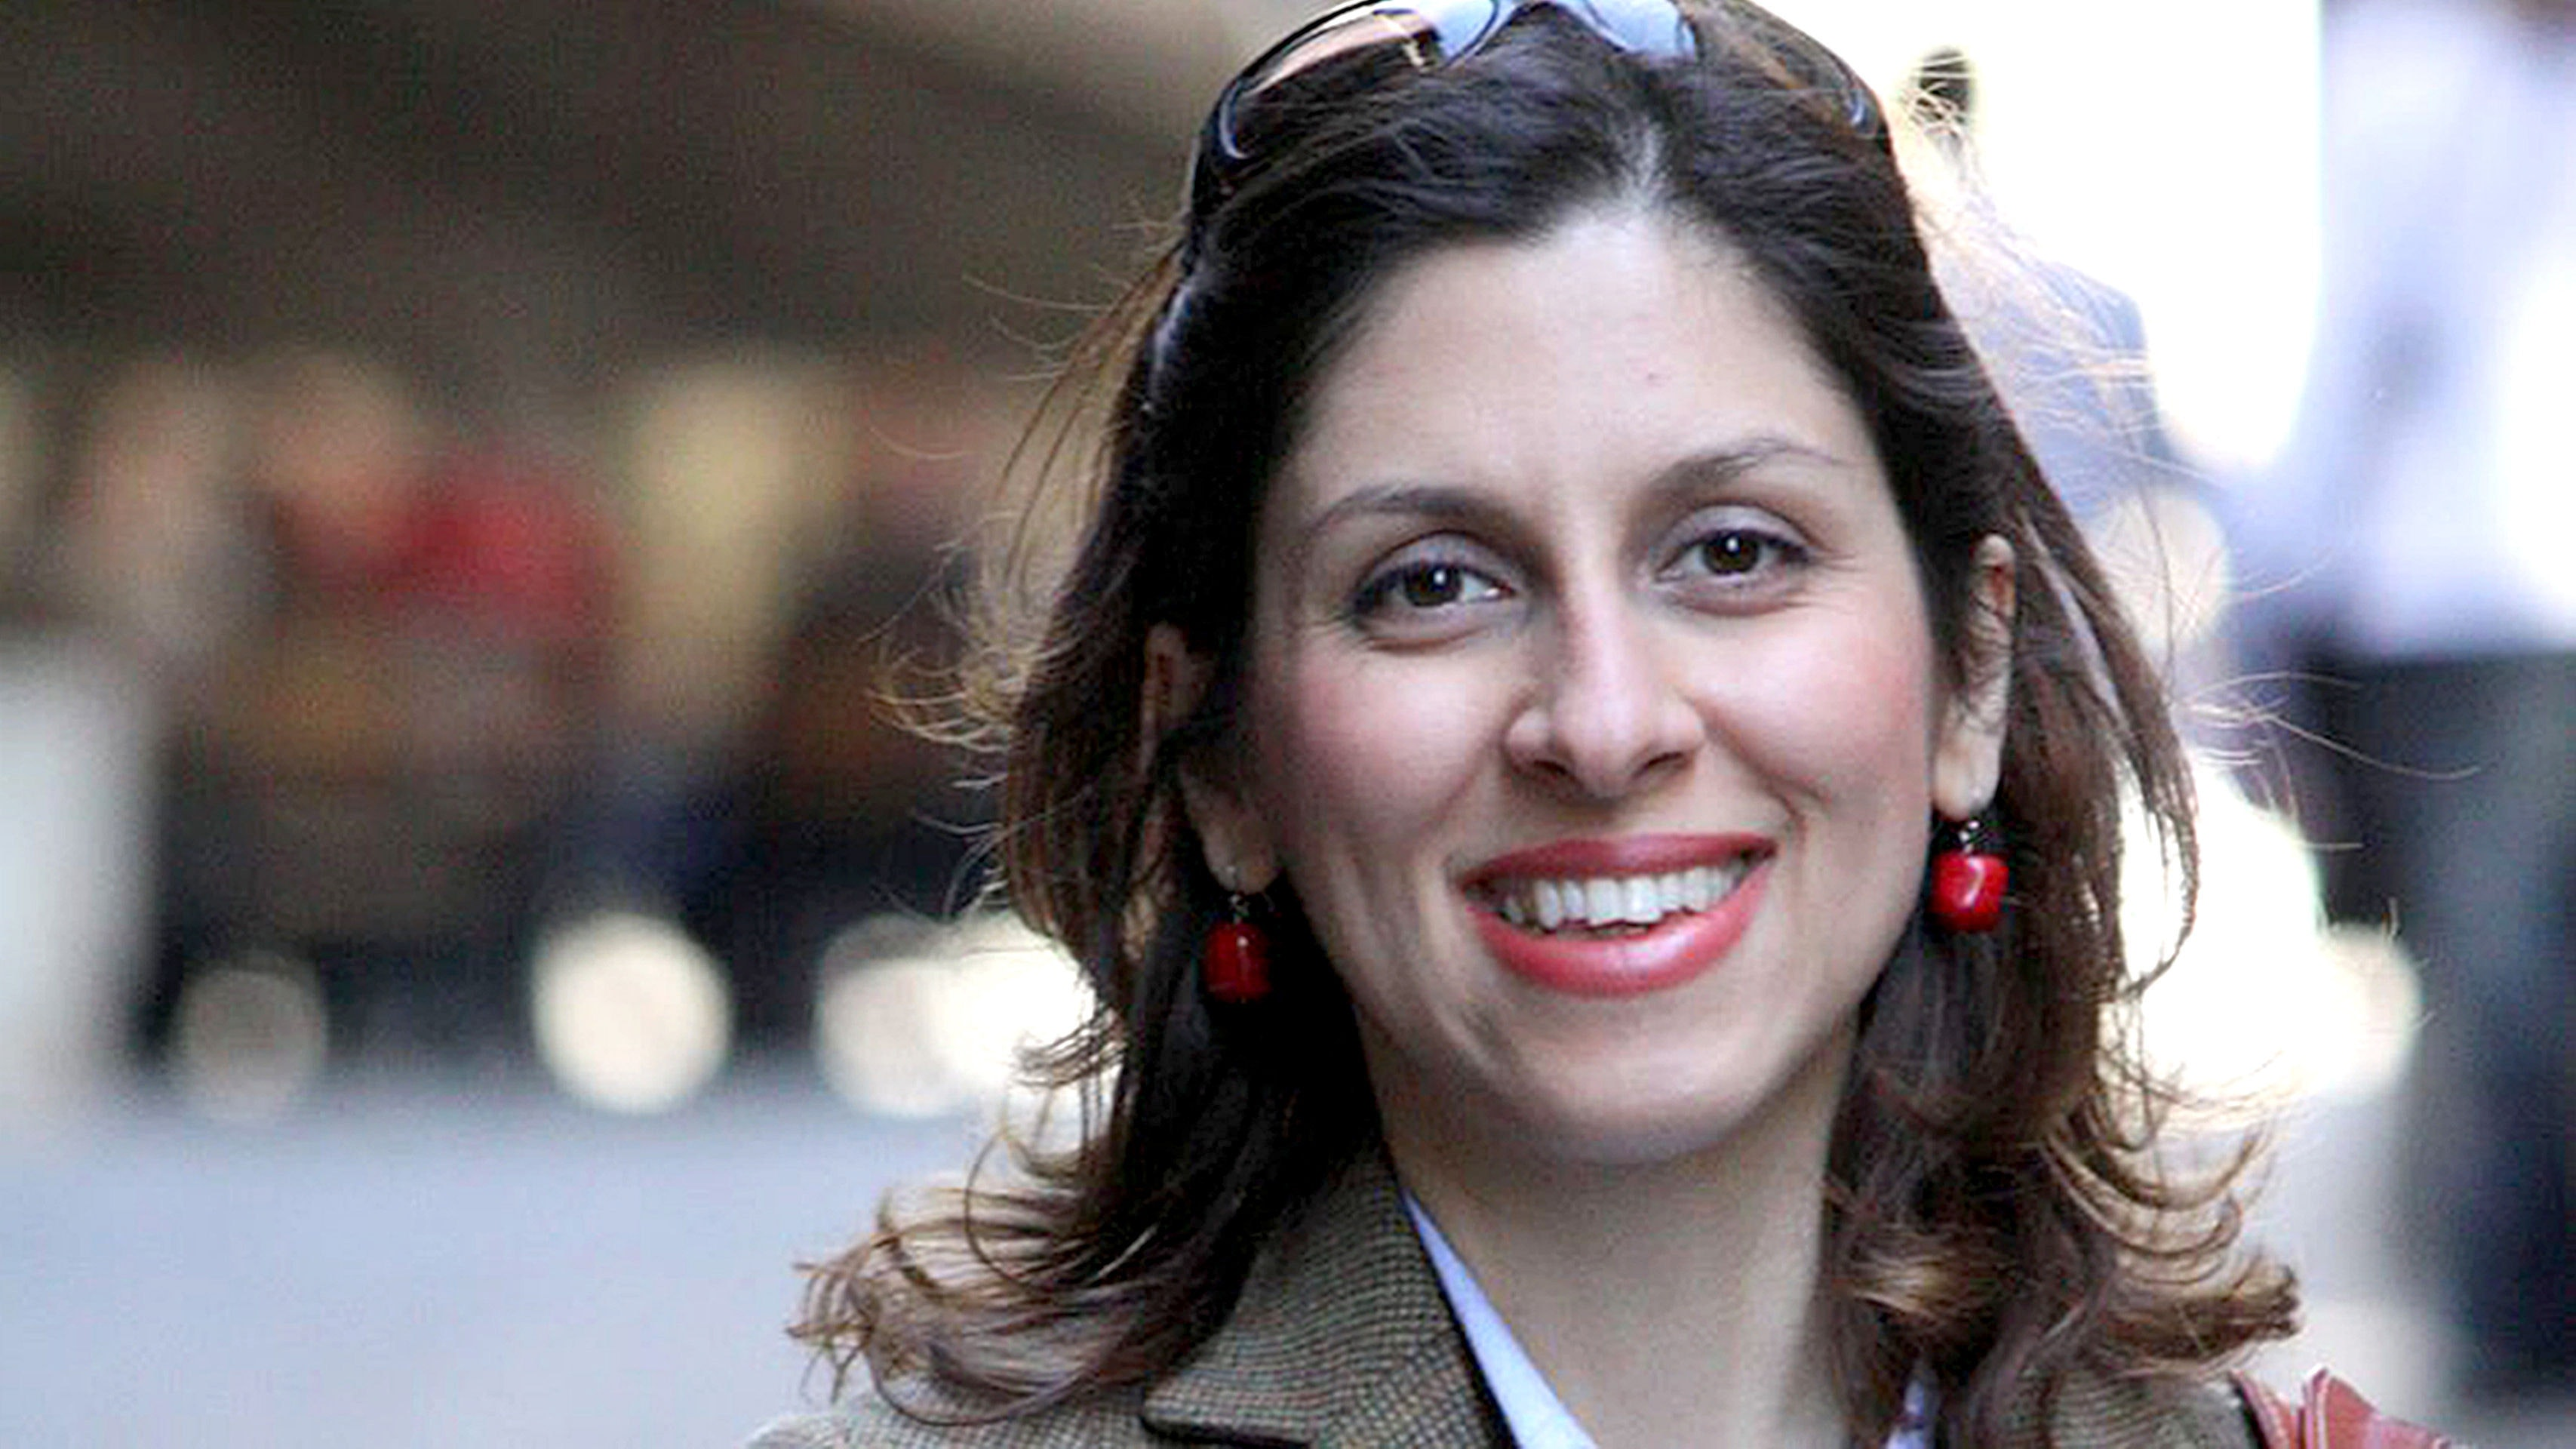 United Kingdom extremely concerned about jailed British-Iranian aid worker